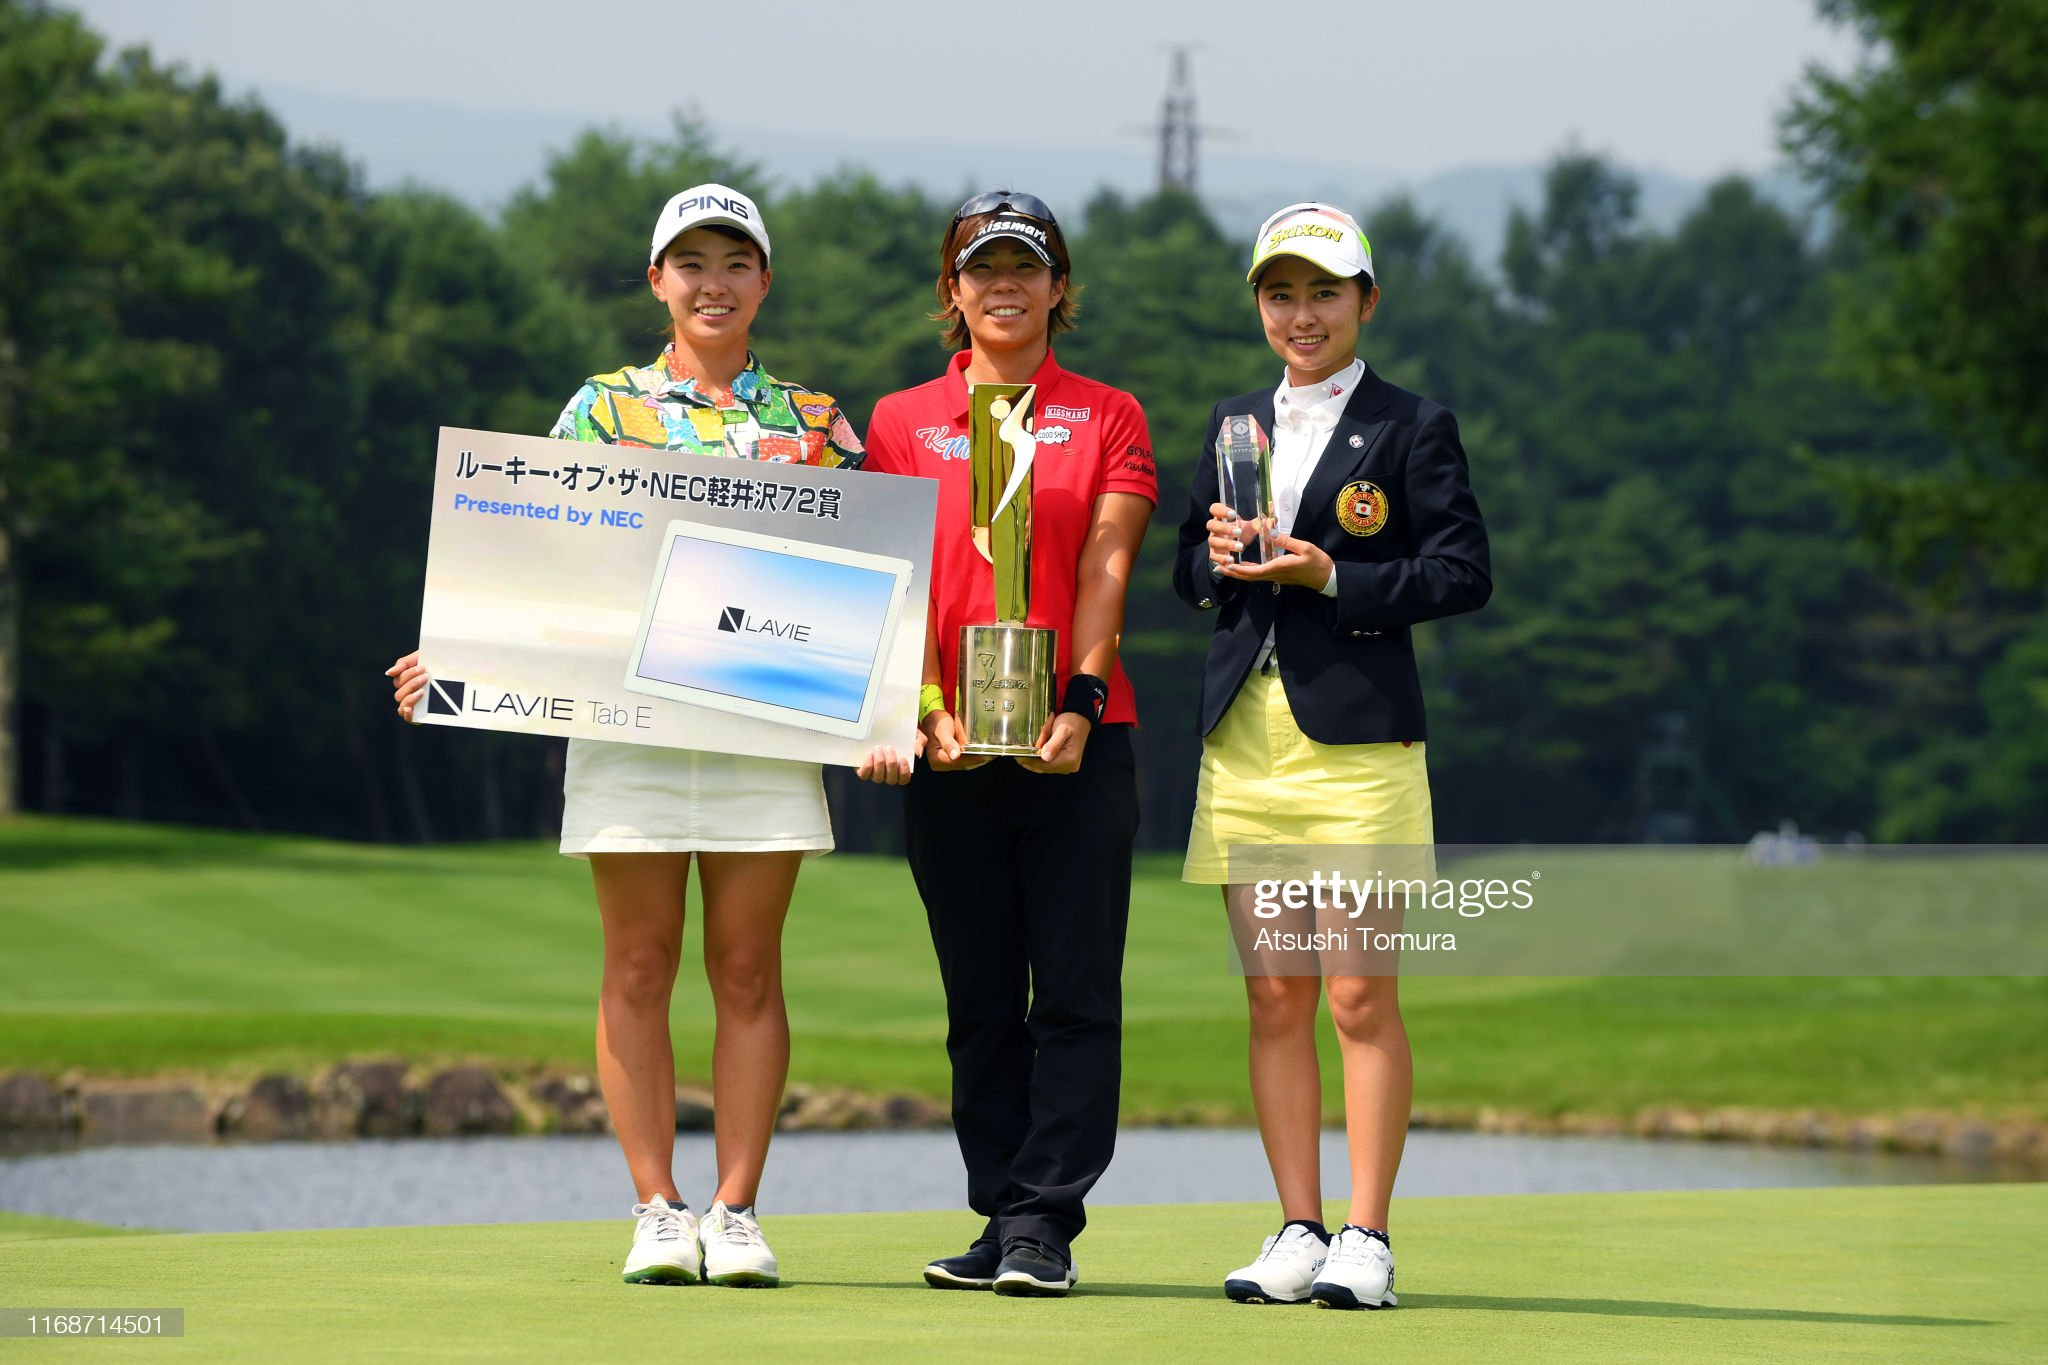 https://media.gettyimages.com/photos/tournament-winner-lala-anai-poses-with-the-rookie-of-the-nec-72-picture-id1168714501?s=2048x2048